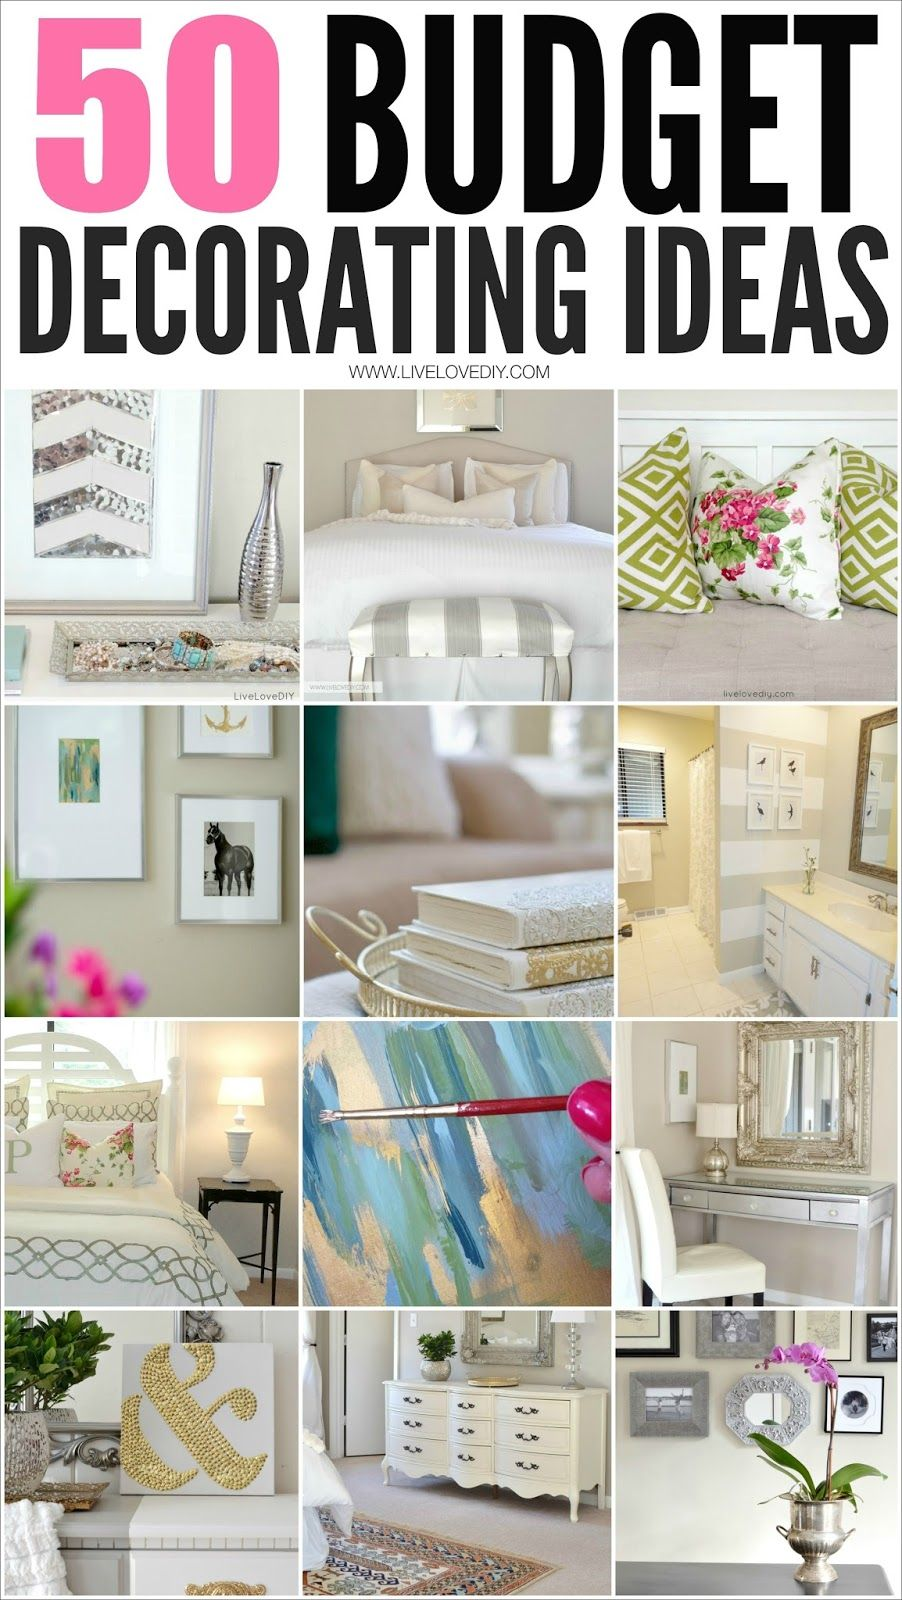 Inexpensive Apartment Decorating Ideas apartment bedroom decorating ideas on a budget apartment decorating on a budget decorating ideas images in 50 Budget Decorating Tips You Should Know Livelovediy Apartment Livingapartment Ideasdiy